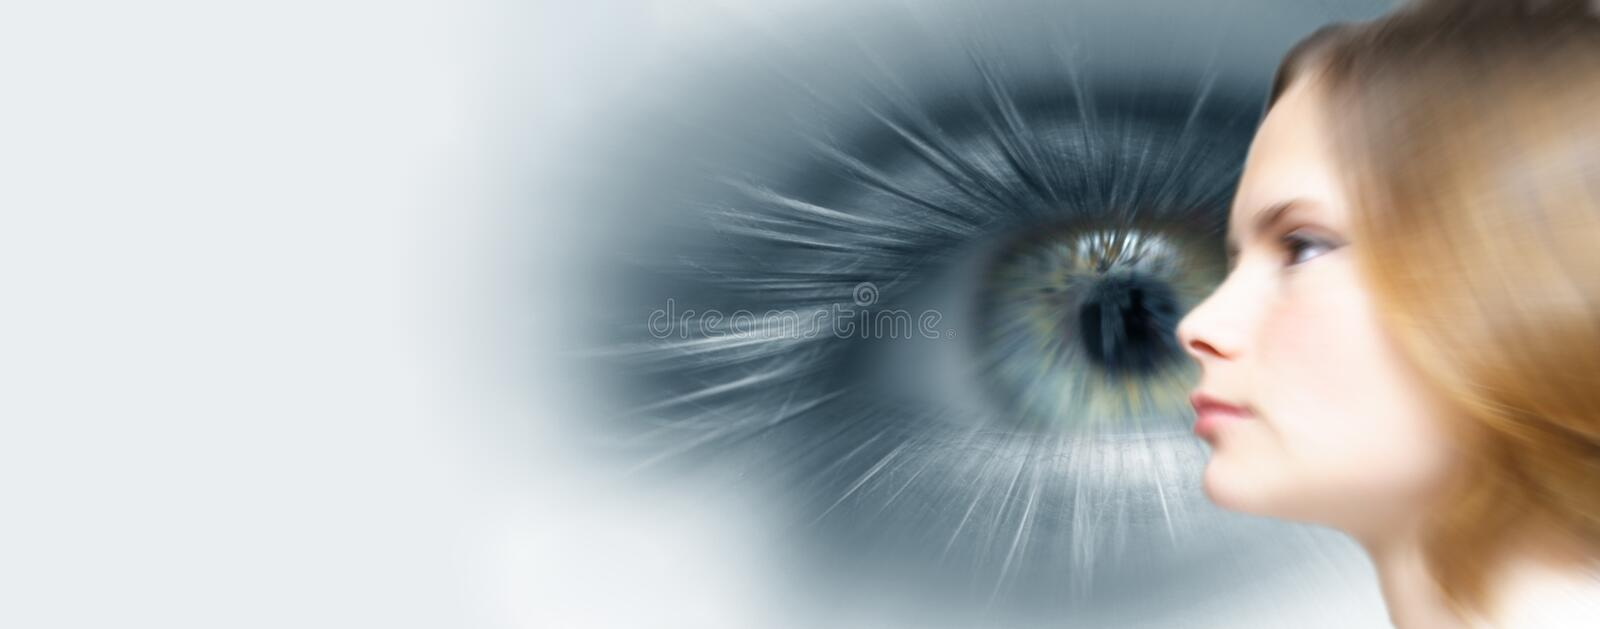 Business future vision. Metaphor for business future vision blur royalty free stock image